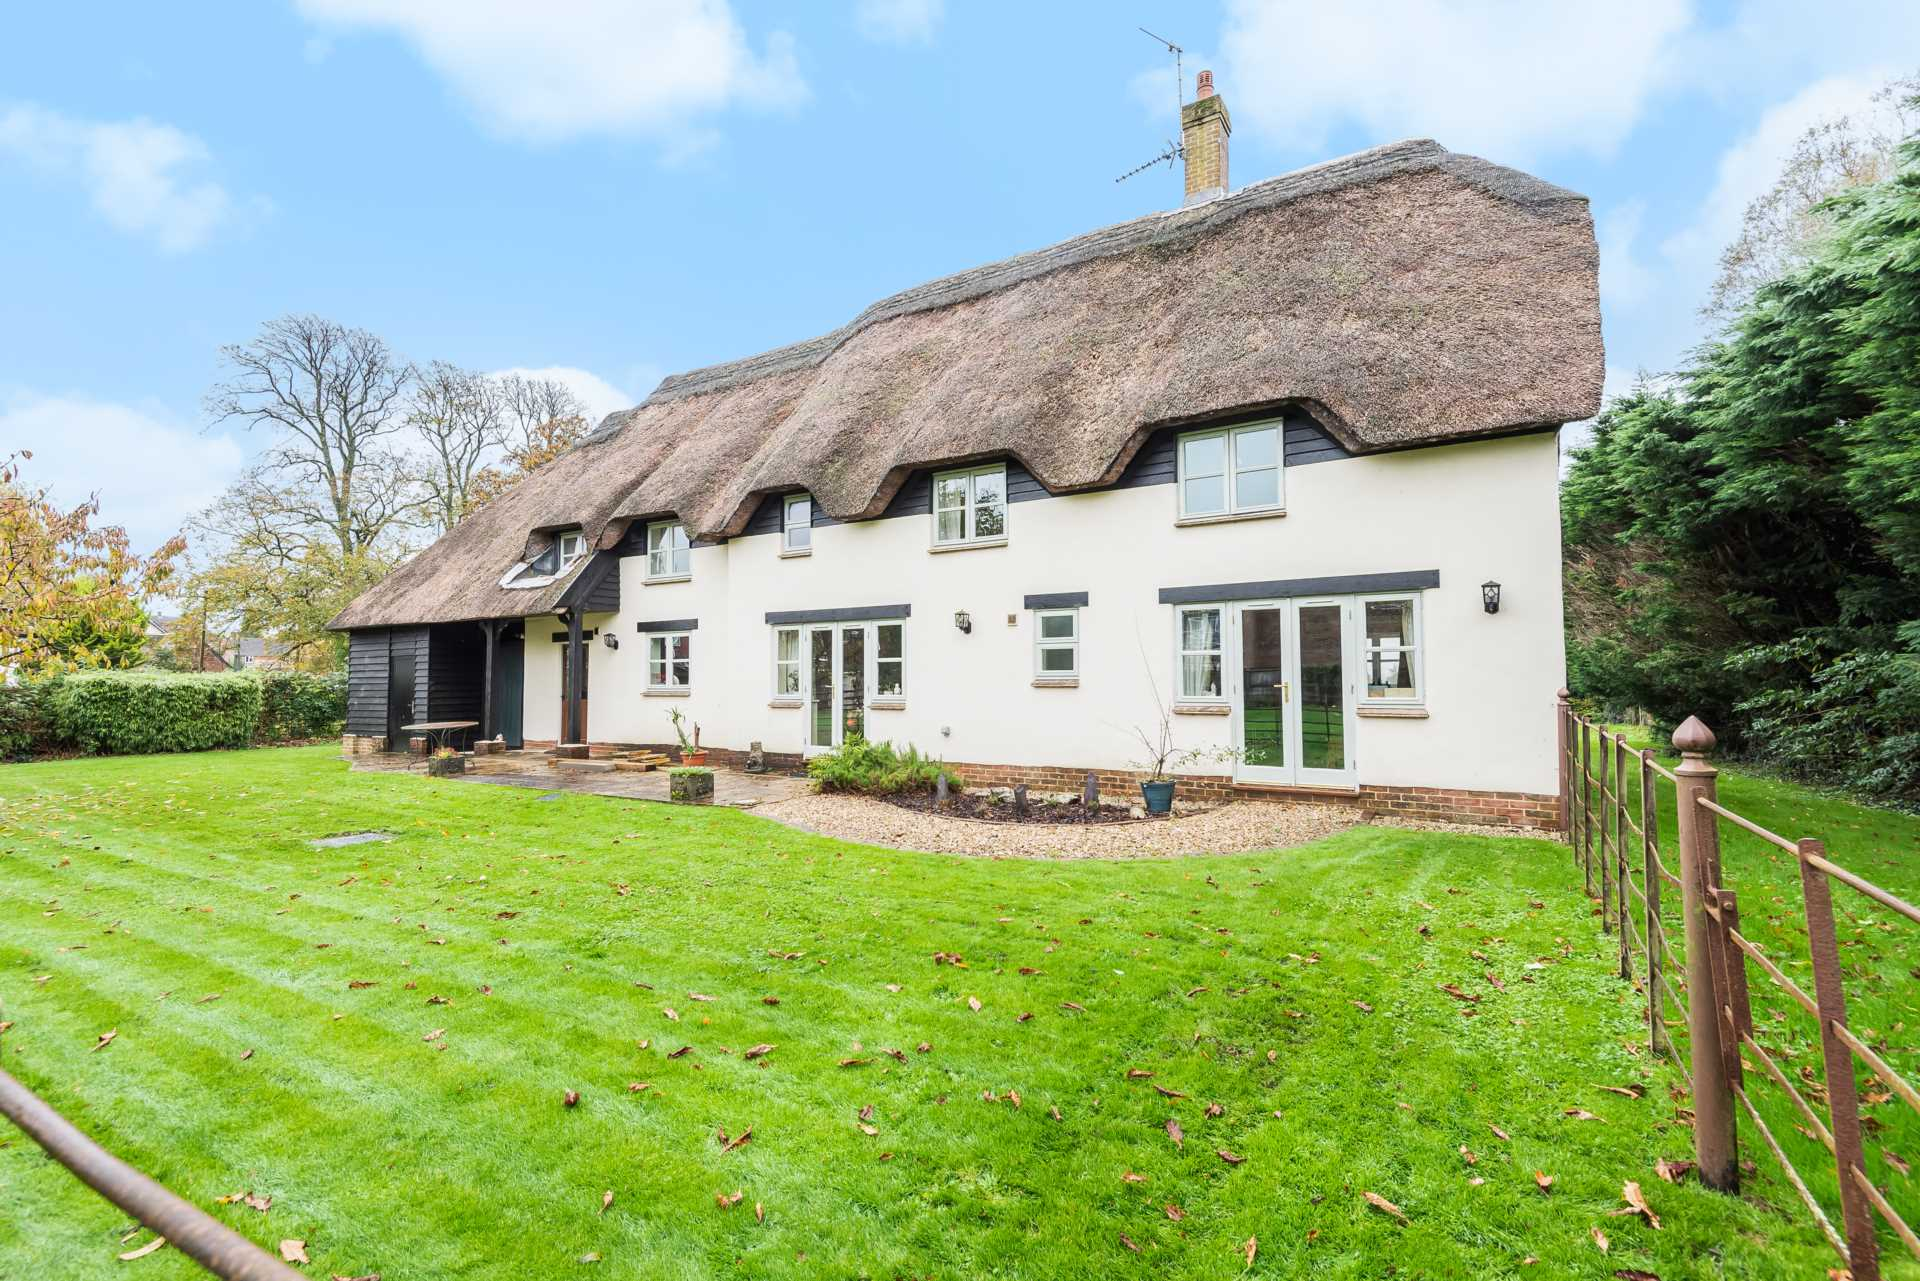 4 bed detached house for sale in Wagtails, Whatcombe Lane, Winterborne Whitechurch, Blandford Forum  - Property Image 25